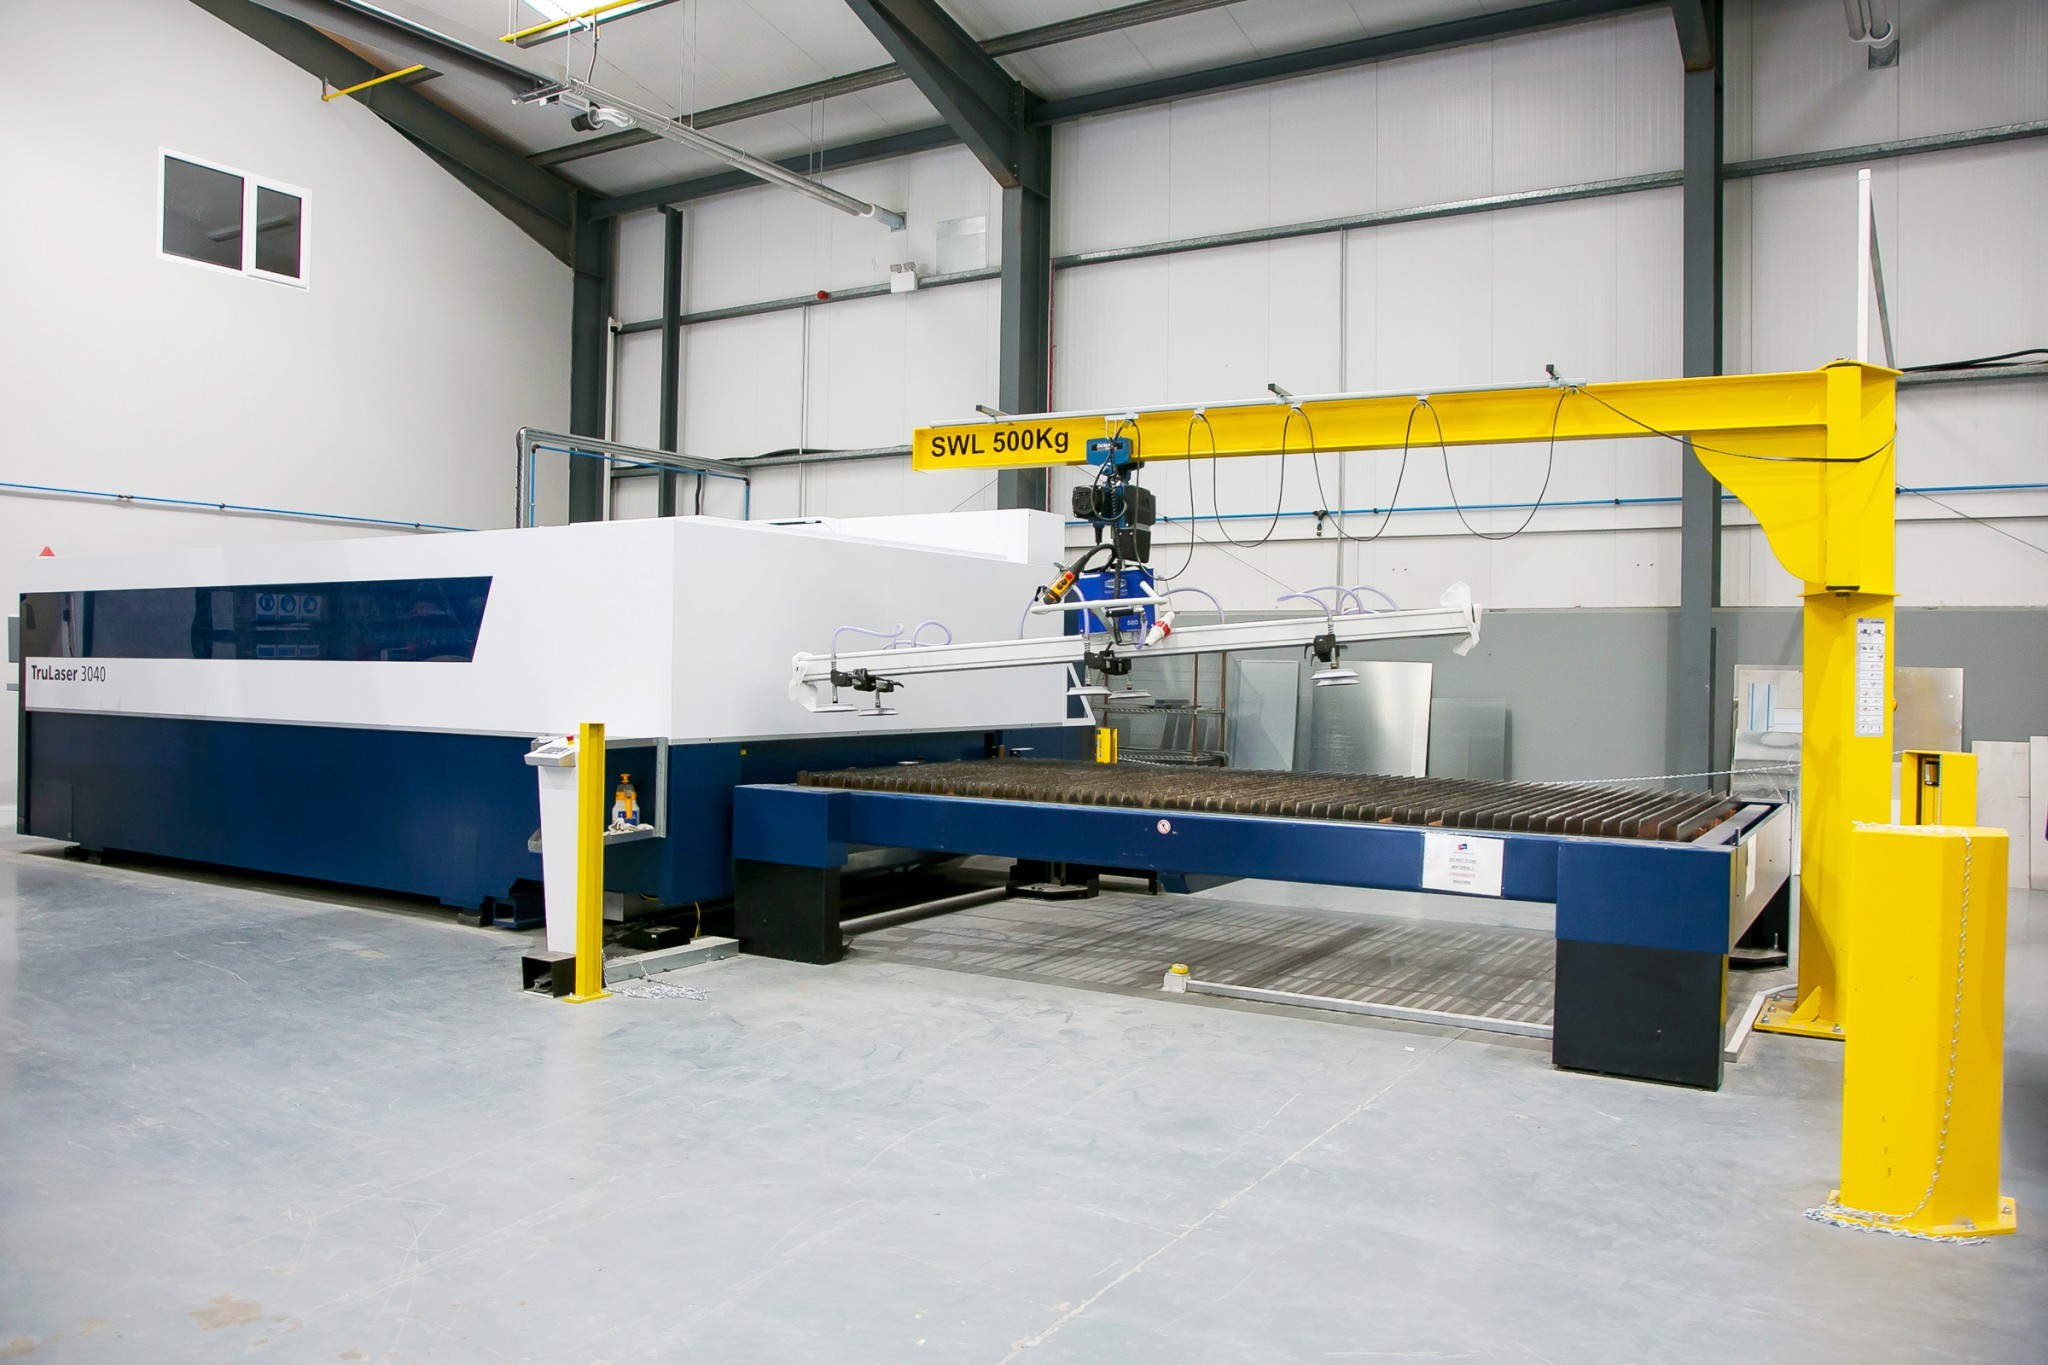 Stainless steel CNC Laser cutting punching bending profile cutting thickness of steel | Breffni Air Ltd - Specialist Ventilation